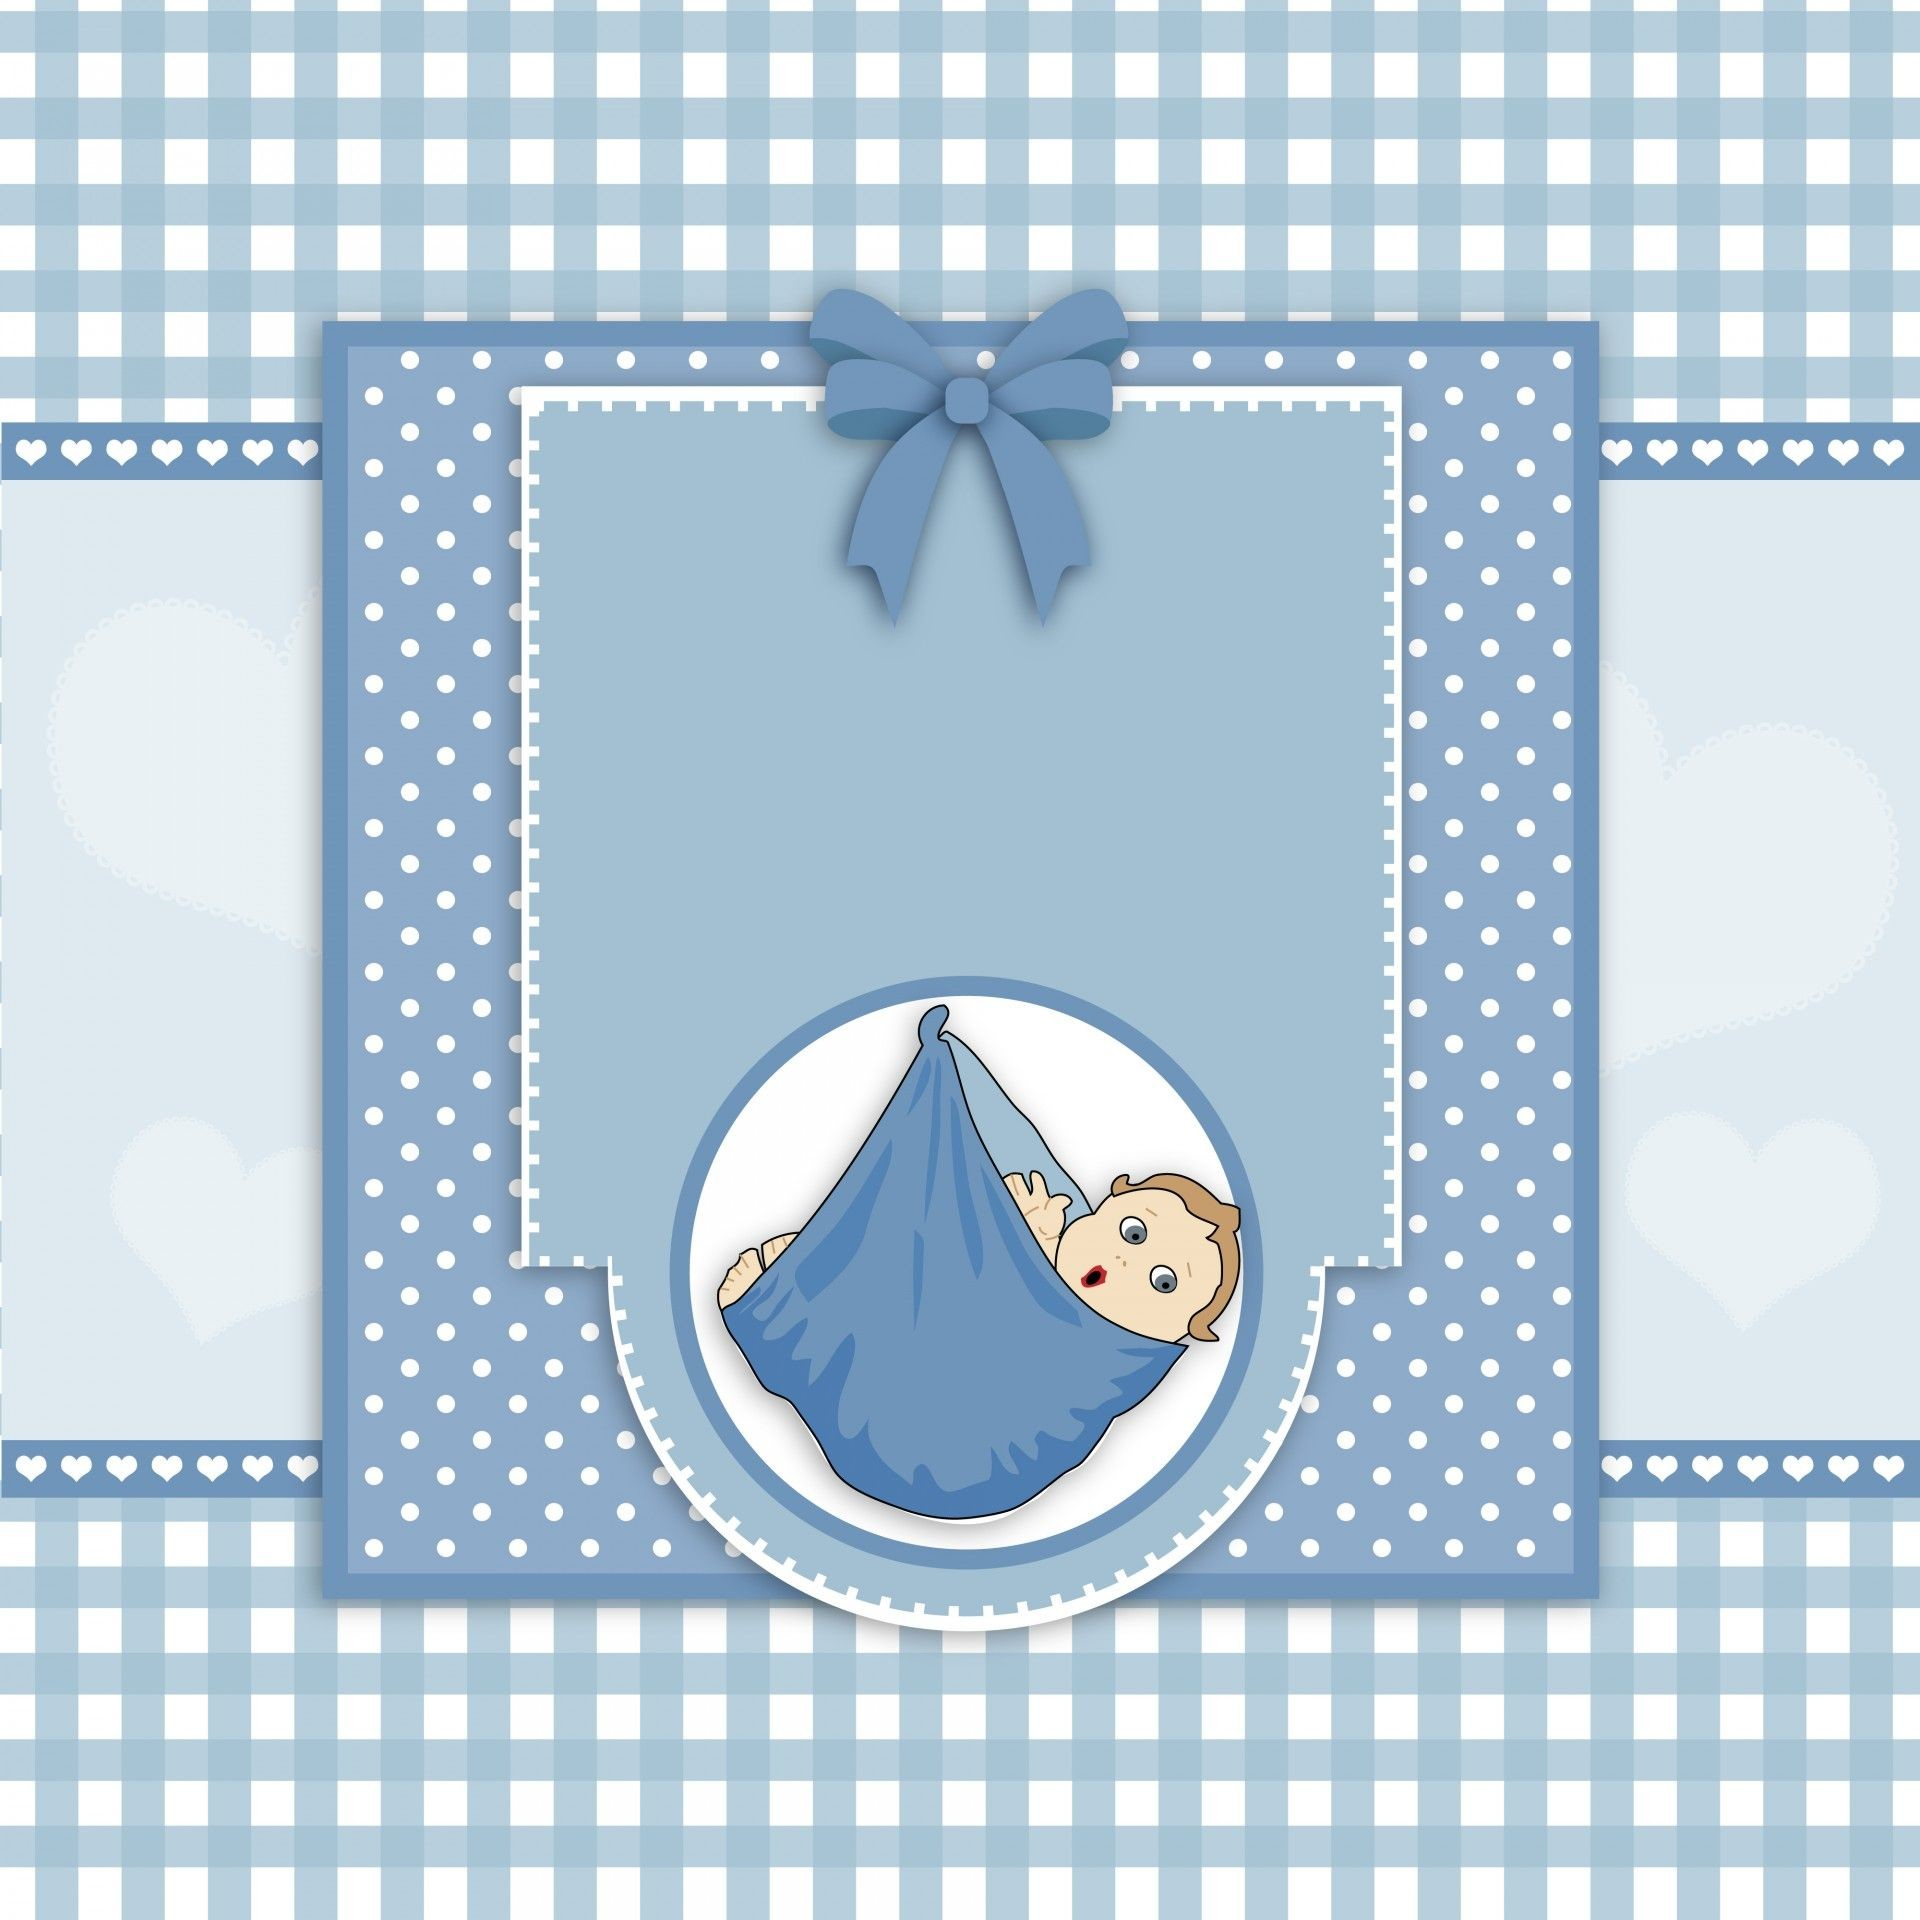 Baby Boy Hd Wallpapers: Baby Boy Wallpaper Backgrounds (45+ Images